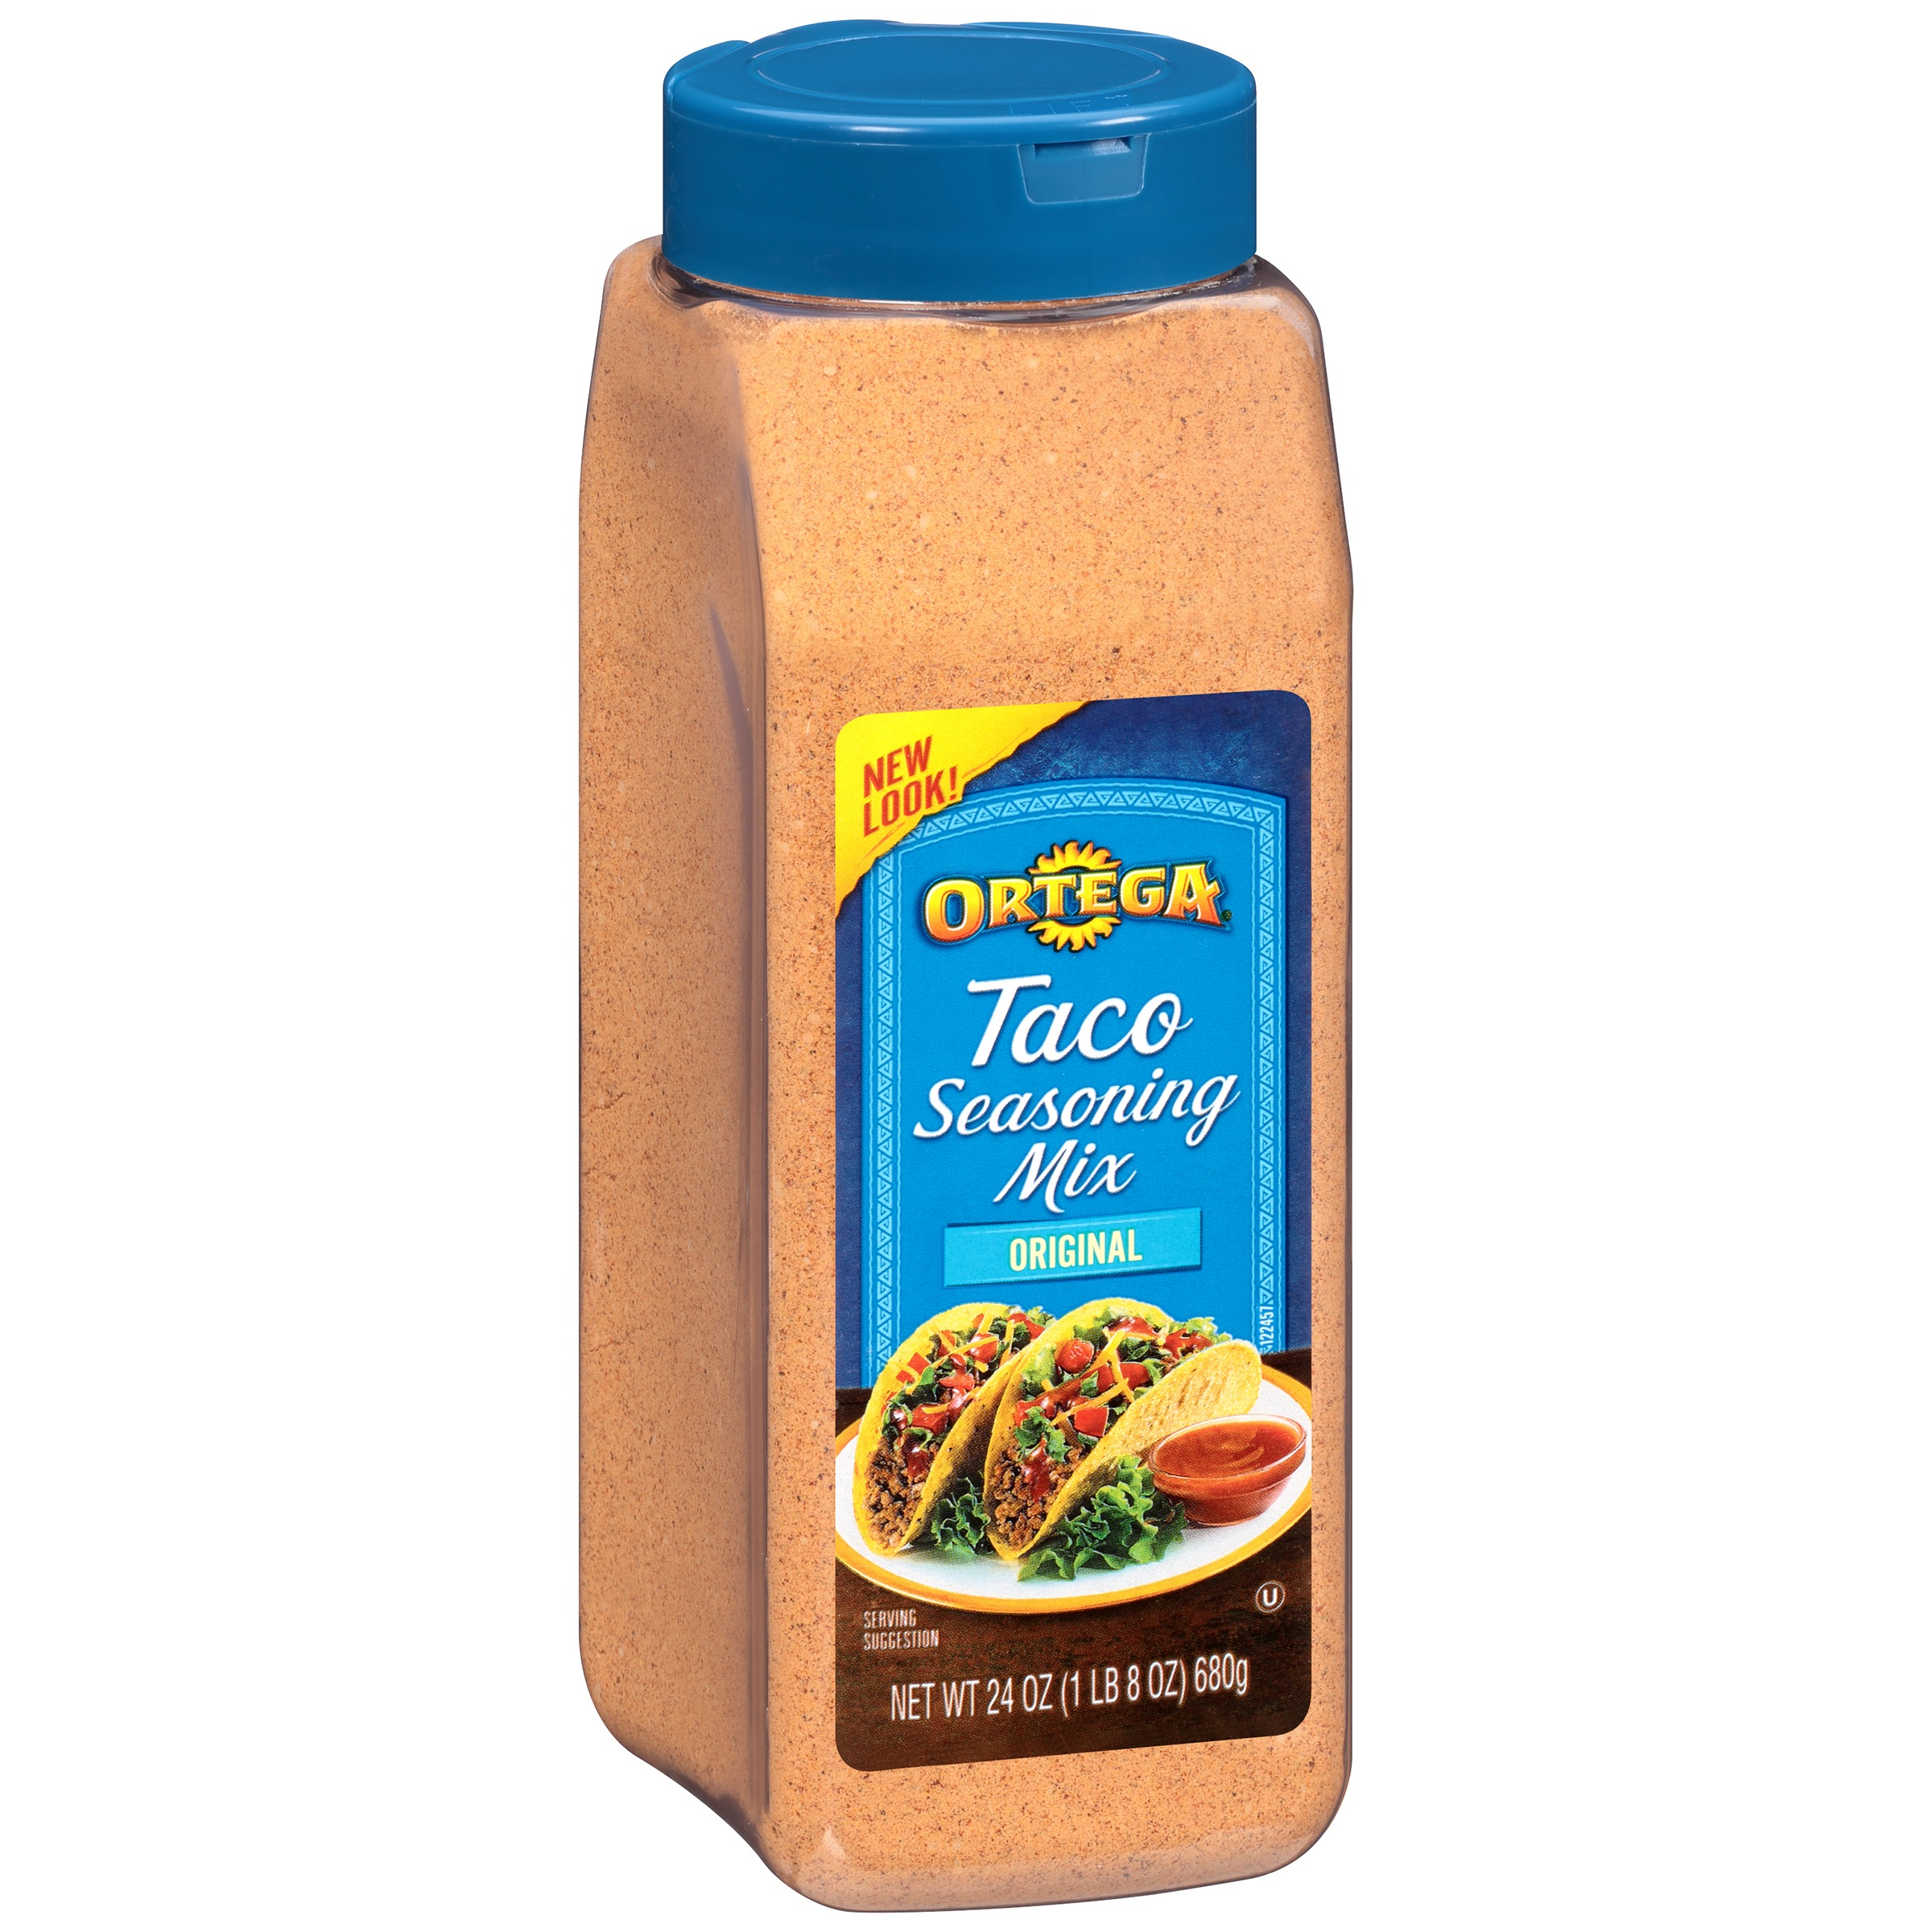 Ortega Taco Seasoning Mix, Original, 24 Oz